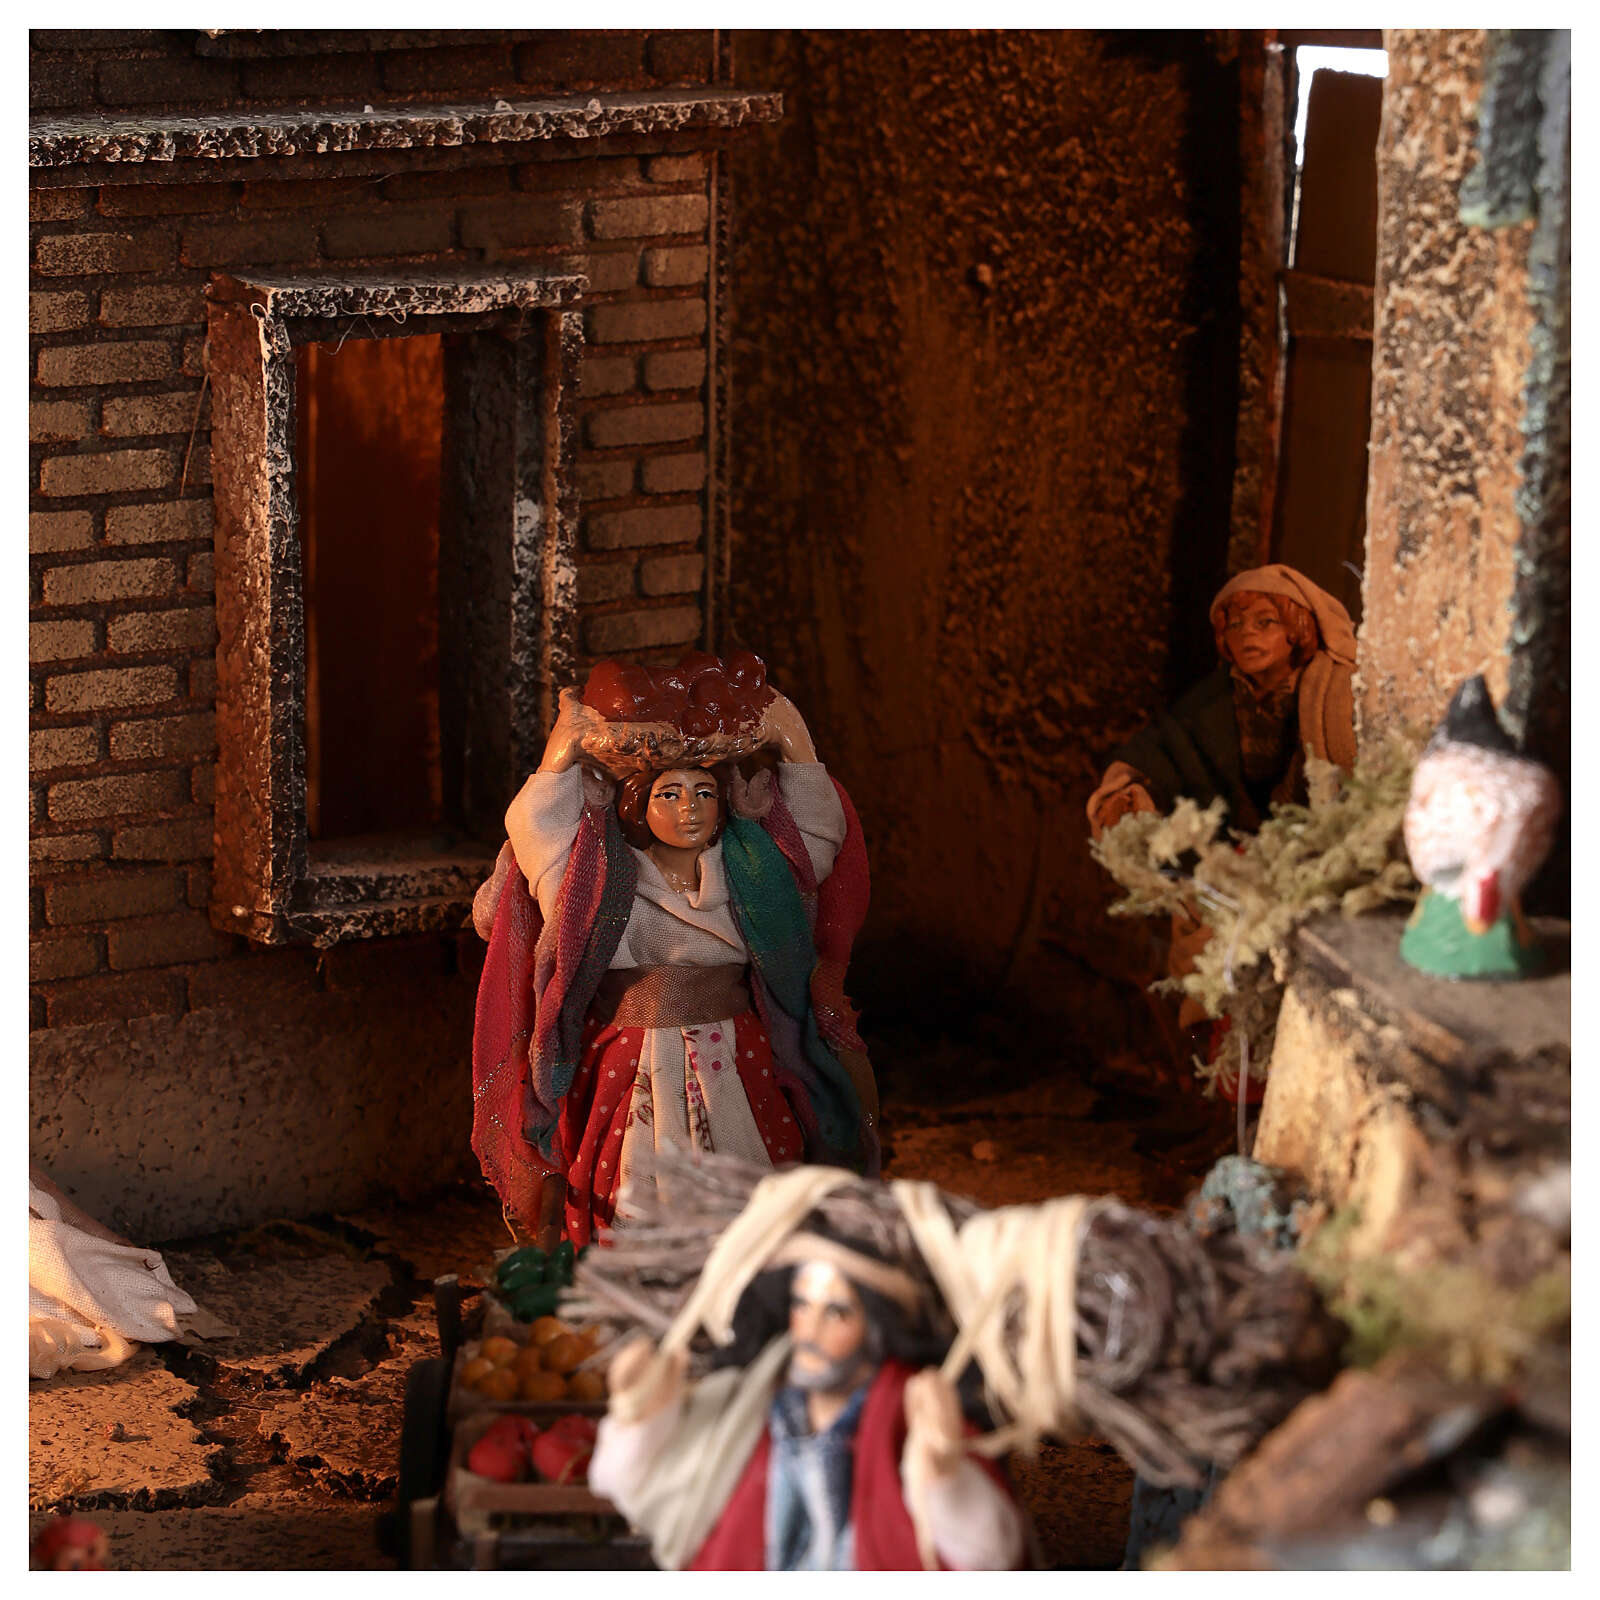 Neapolitan nativity village with bell tower church with animated figurines 8-10 cm 90x80x60 cm 4